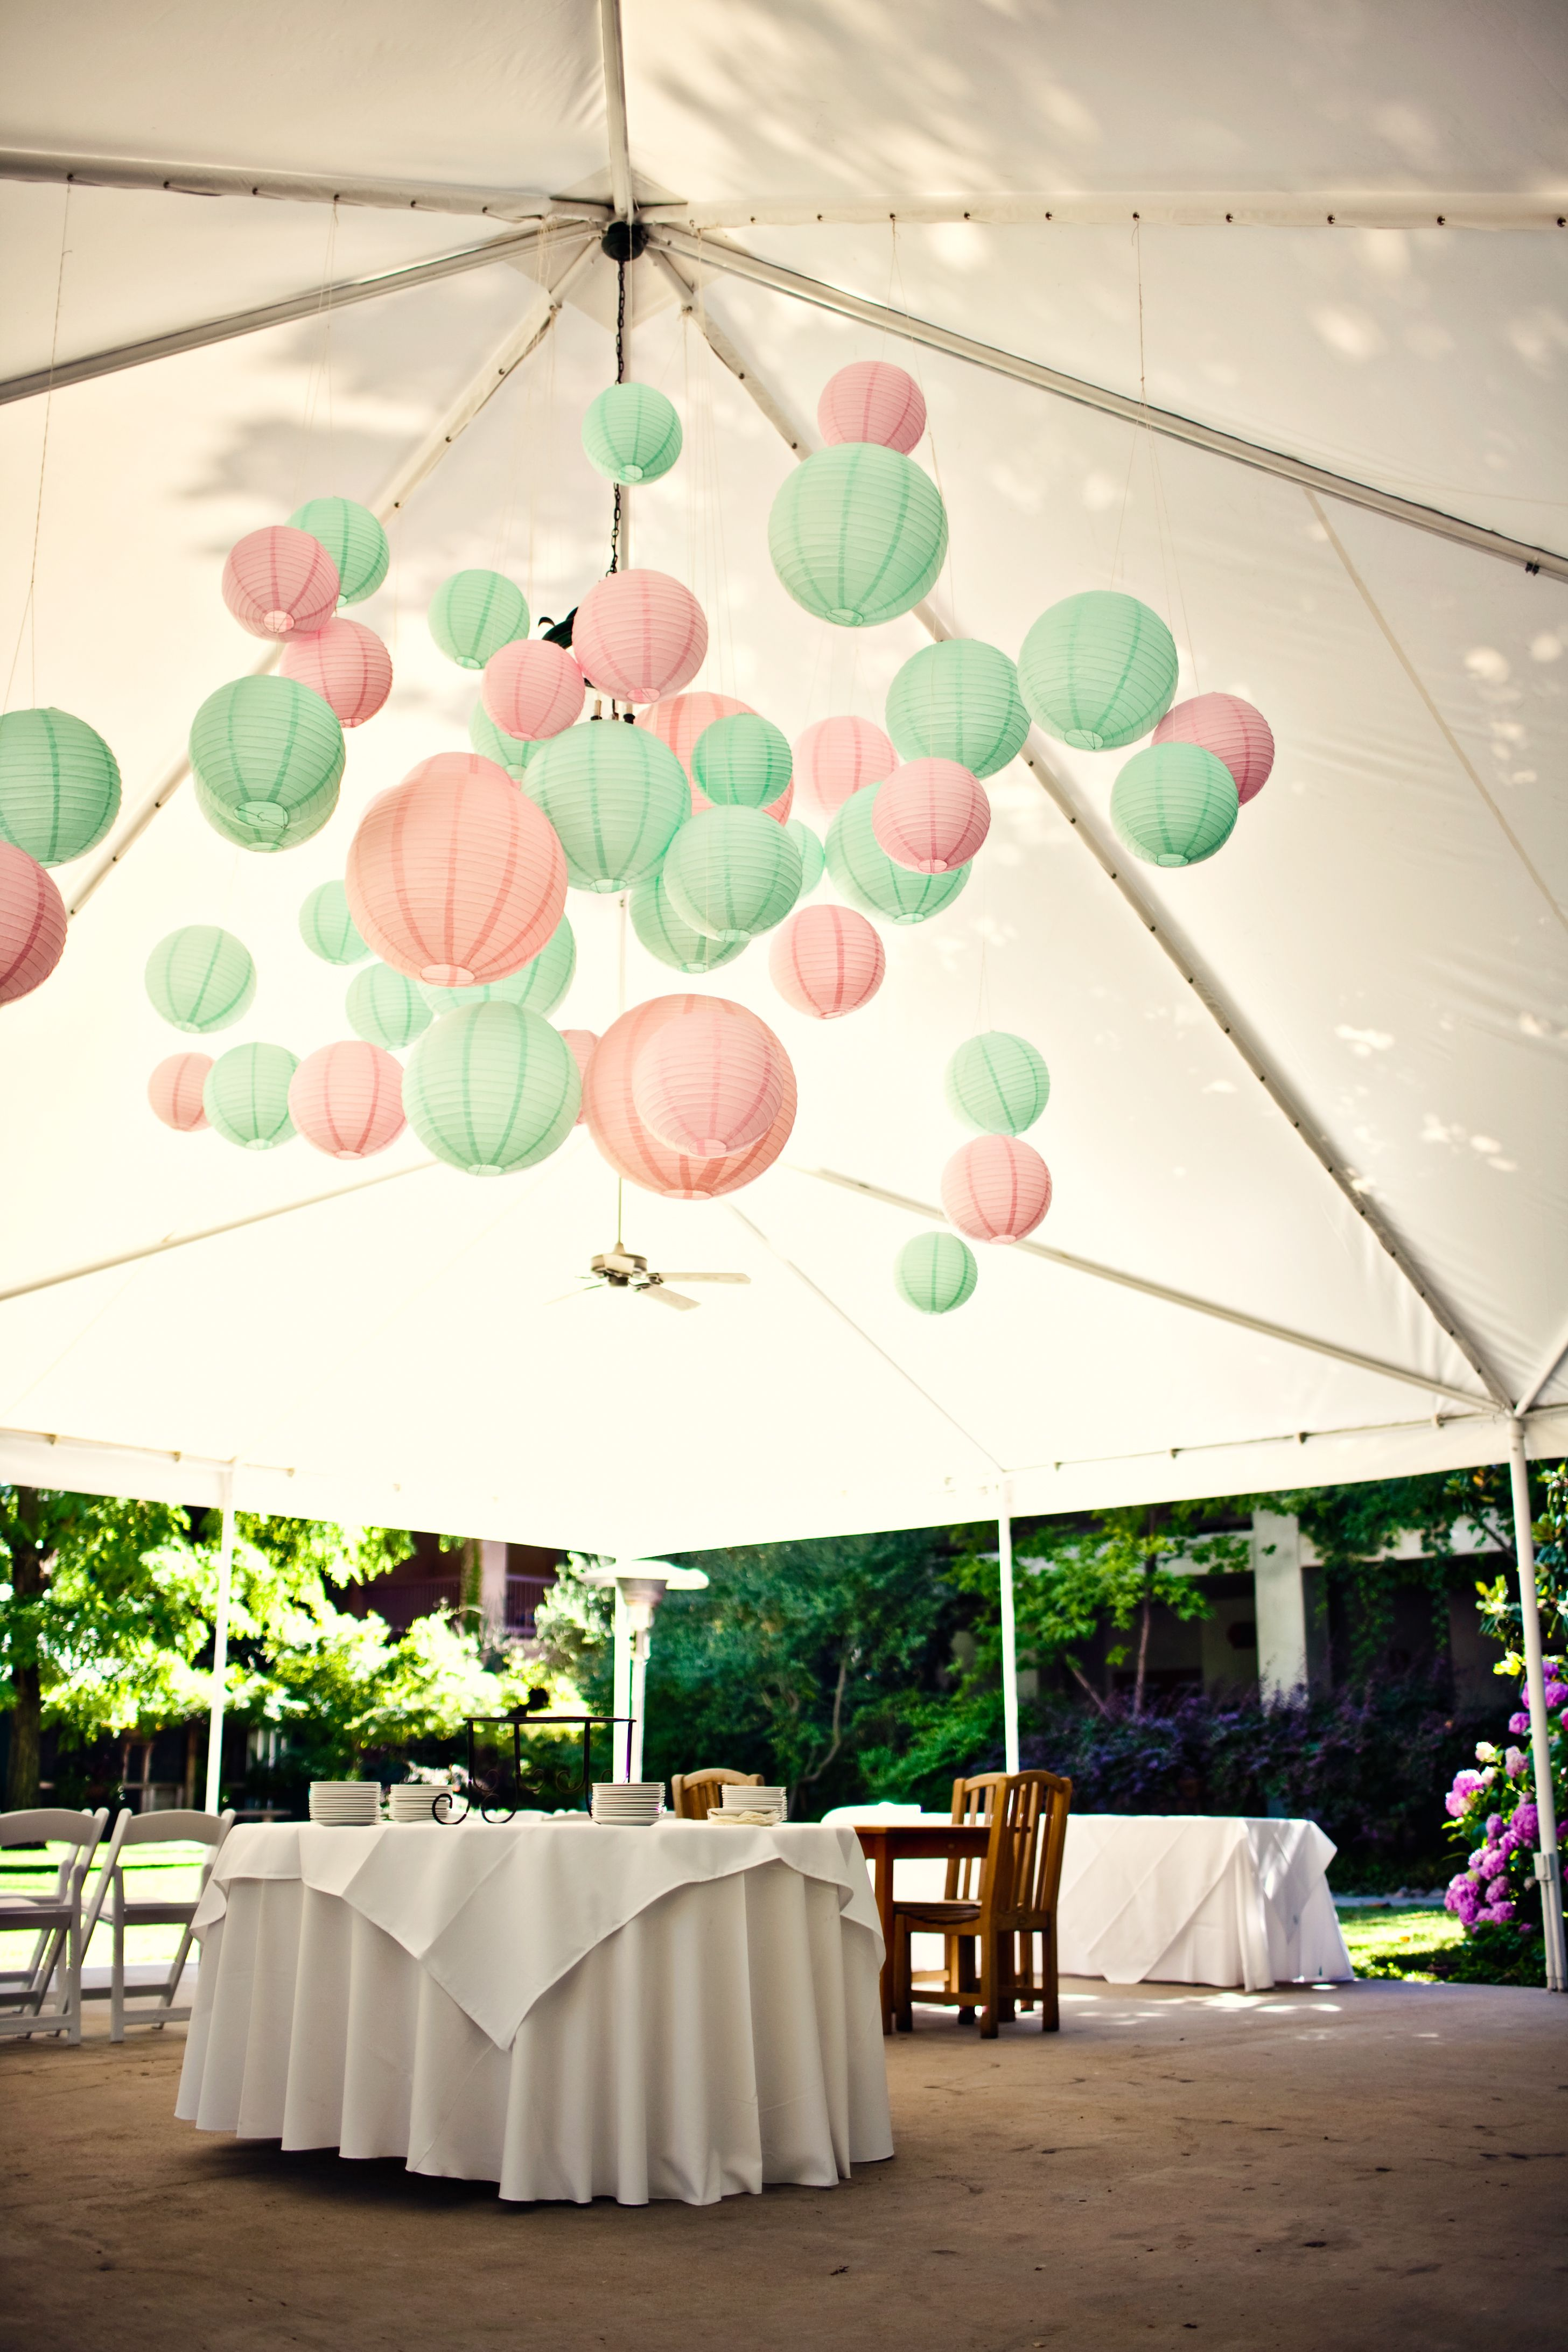 50 Paper Lantern Ideas For Your Wedding Tressy S Weddng Outdoor Wedding Decorations Wedding Decorations Tent Decorations